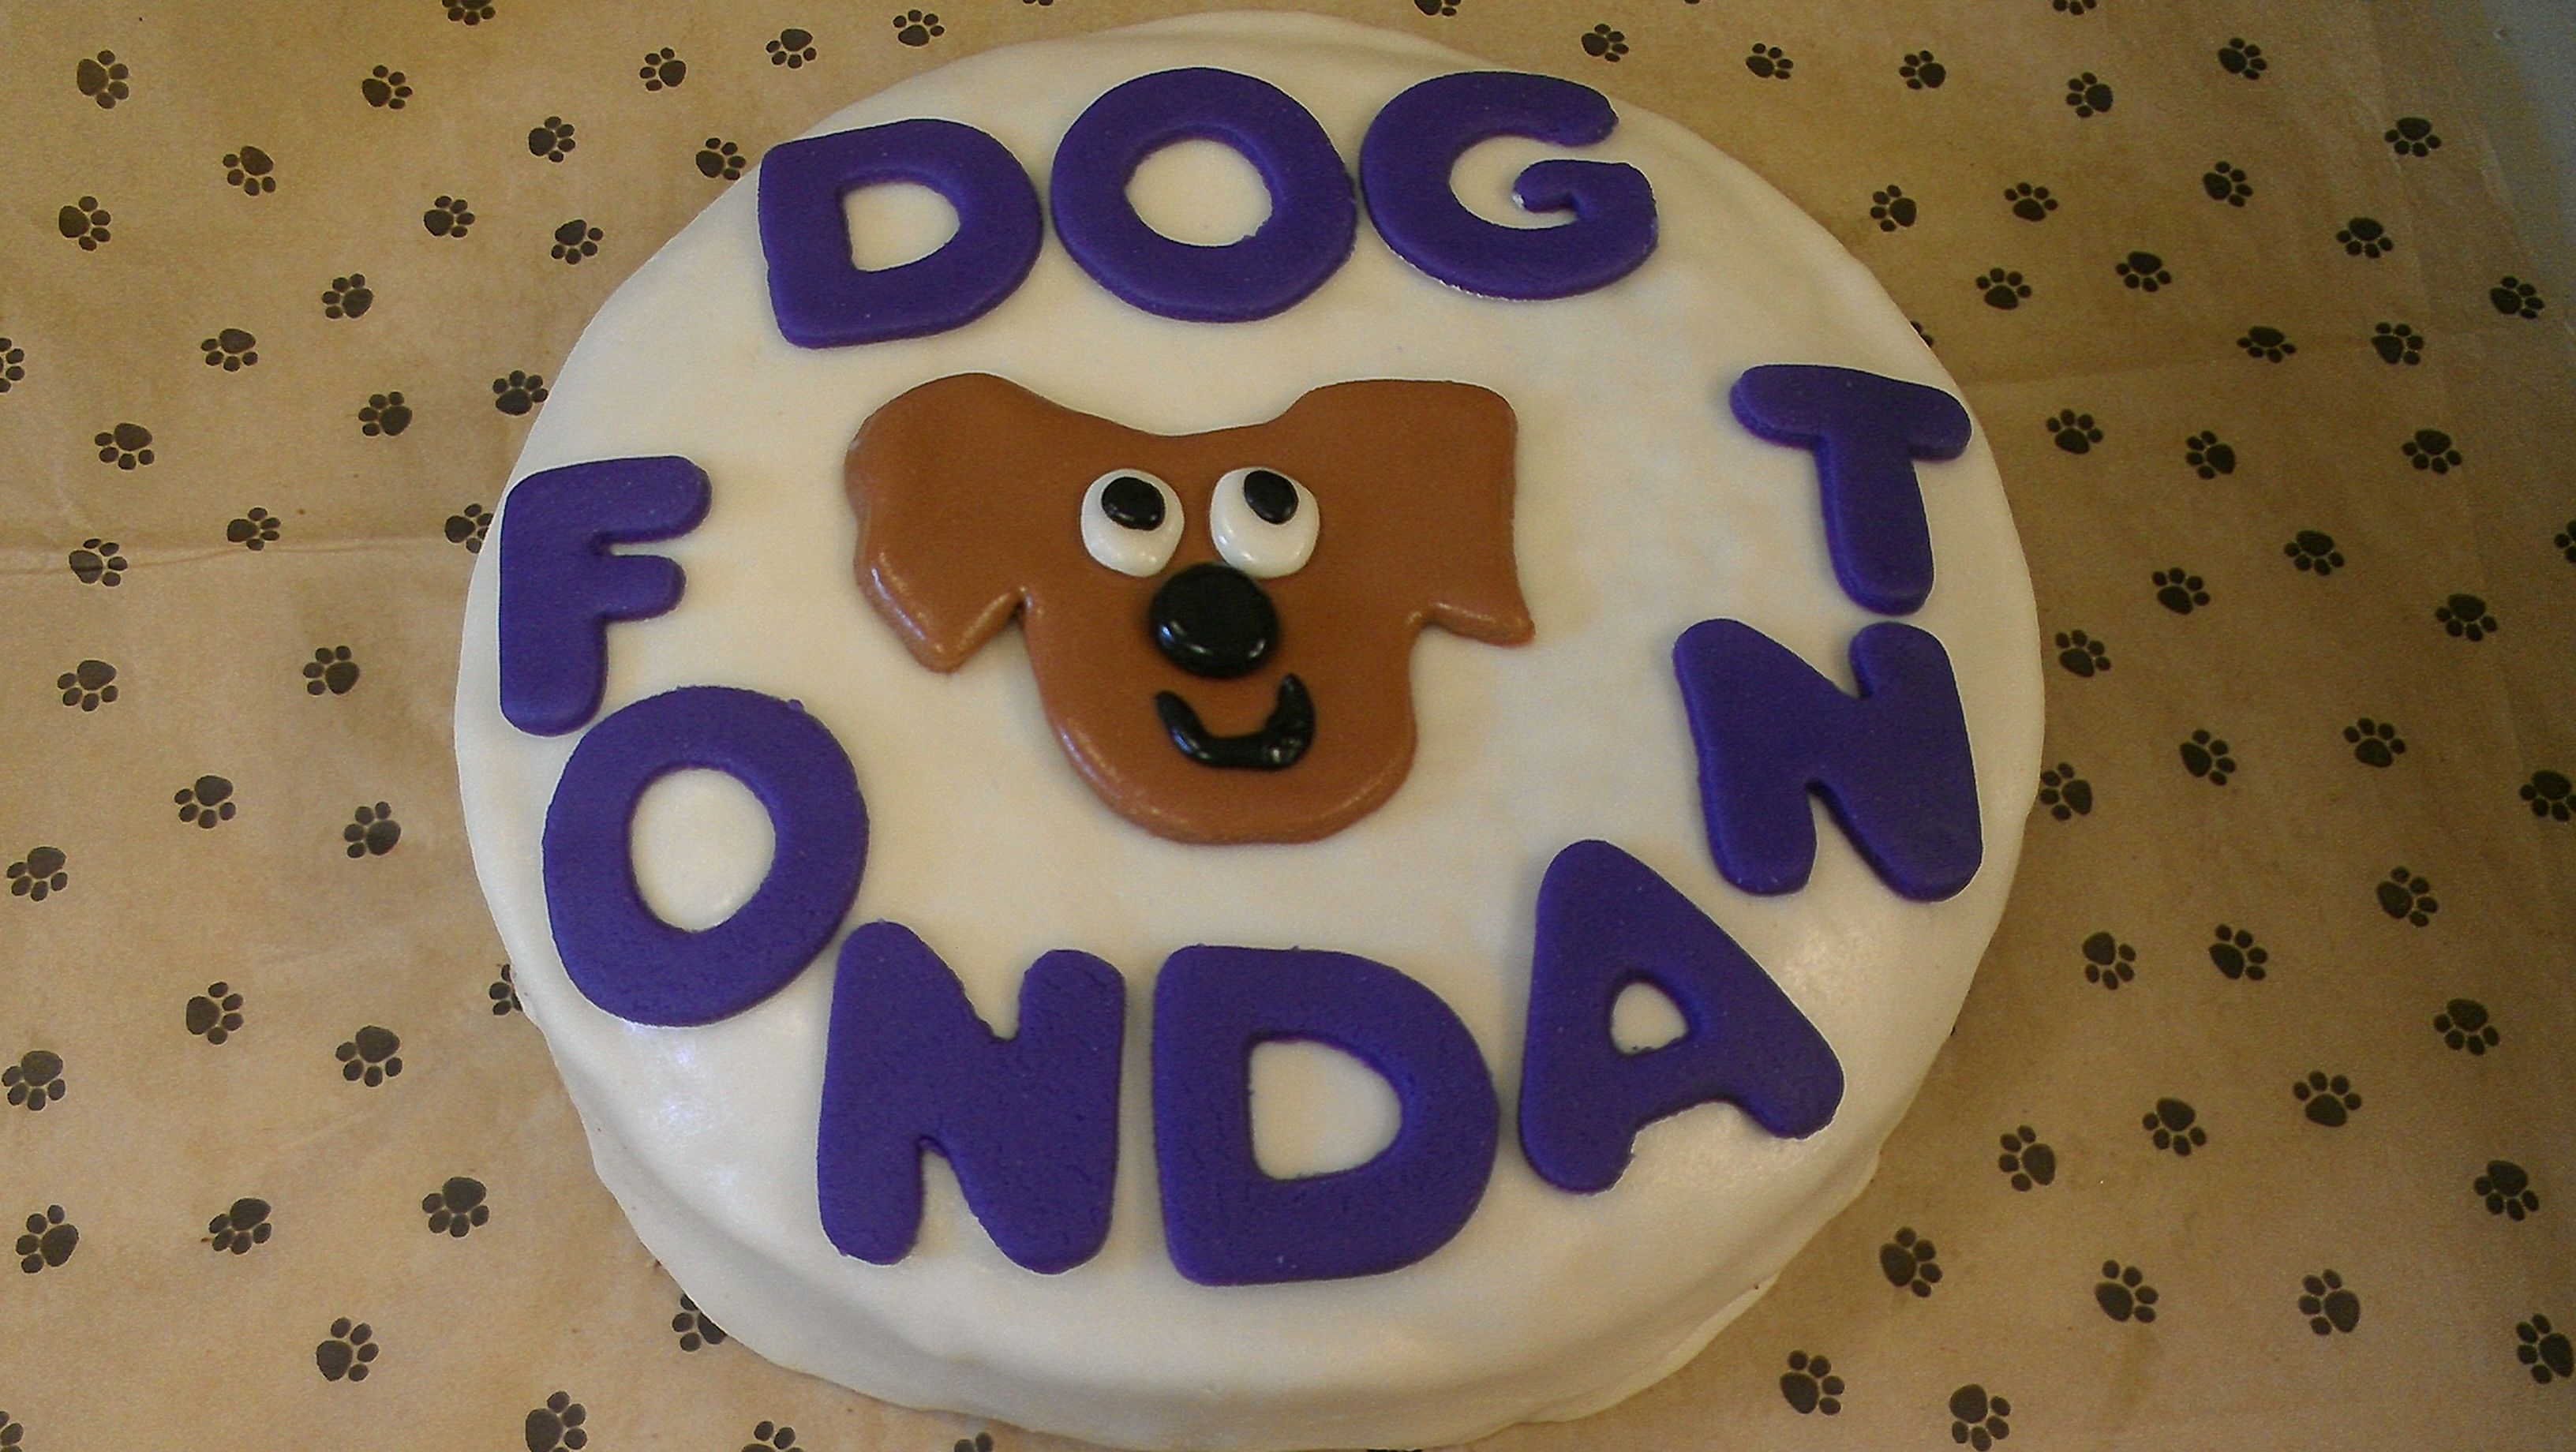 A Doggy Cake Covered In Treaty Treat Dog Safe Fondant From Www